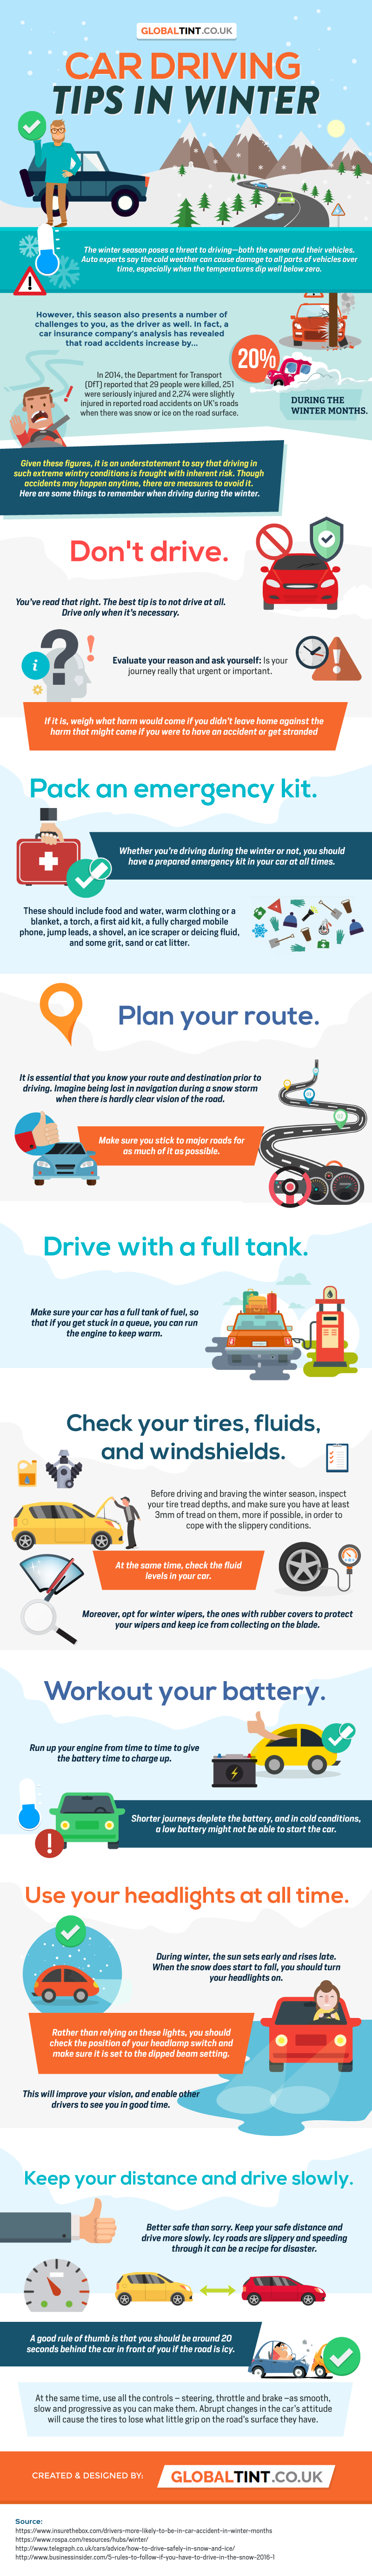 Car Driving Tips in Winter